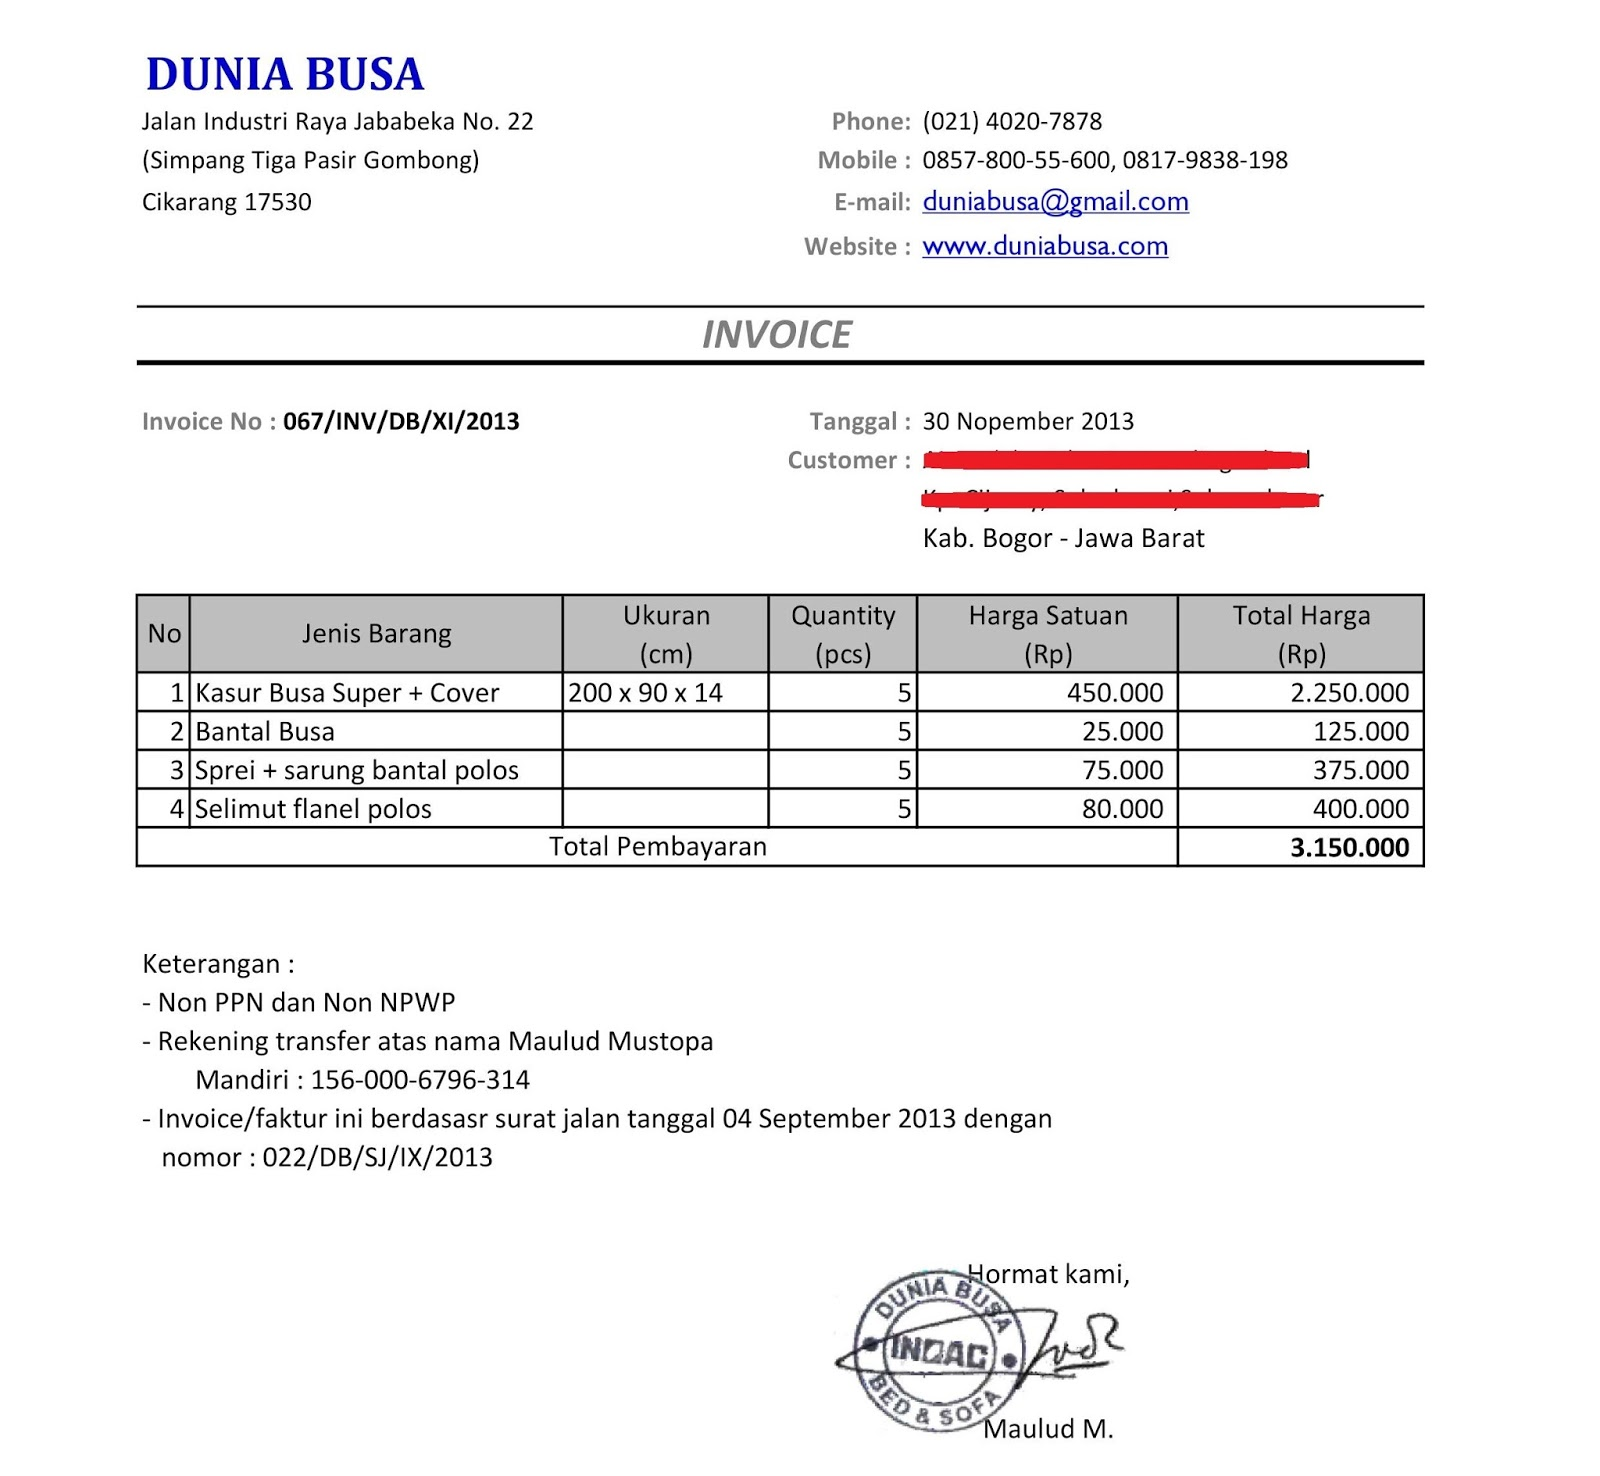 Floobydustus  Nice Free Invoice Online  Create Invoice Online  Invoice Template  With Exciting Contoh Format Invoice Atau Surat Tagihan  Brankas Arsip  Free Invoice Online With Agreeable Invoice Mailing Service Also How Do You Send A Paypal Invoice In Addition Invoice Date Definition And How To Email Invoices From Quickbooks As Well As Towing Invoice Forms Additionally Google Docs Template Invoice From Sklepco With Floobydustus  Exciting Free Invoice Online  Create Invoice Online  Invoice Template  With Agreeable Contoh Format Invoice Atau Surat Tagihan  Brankas Arsip  Free Invoice Online And Nice Invoice Mailing Service Also How Do You Send A Paypal Invoice In Addition Invoice Date Definition From Sklepco